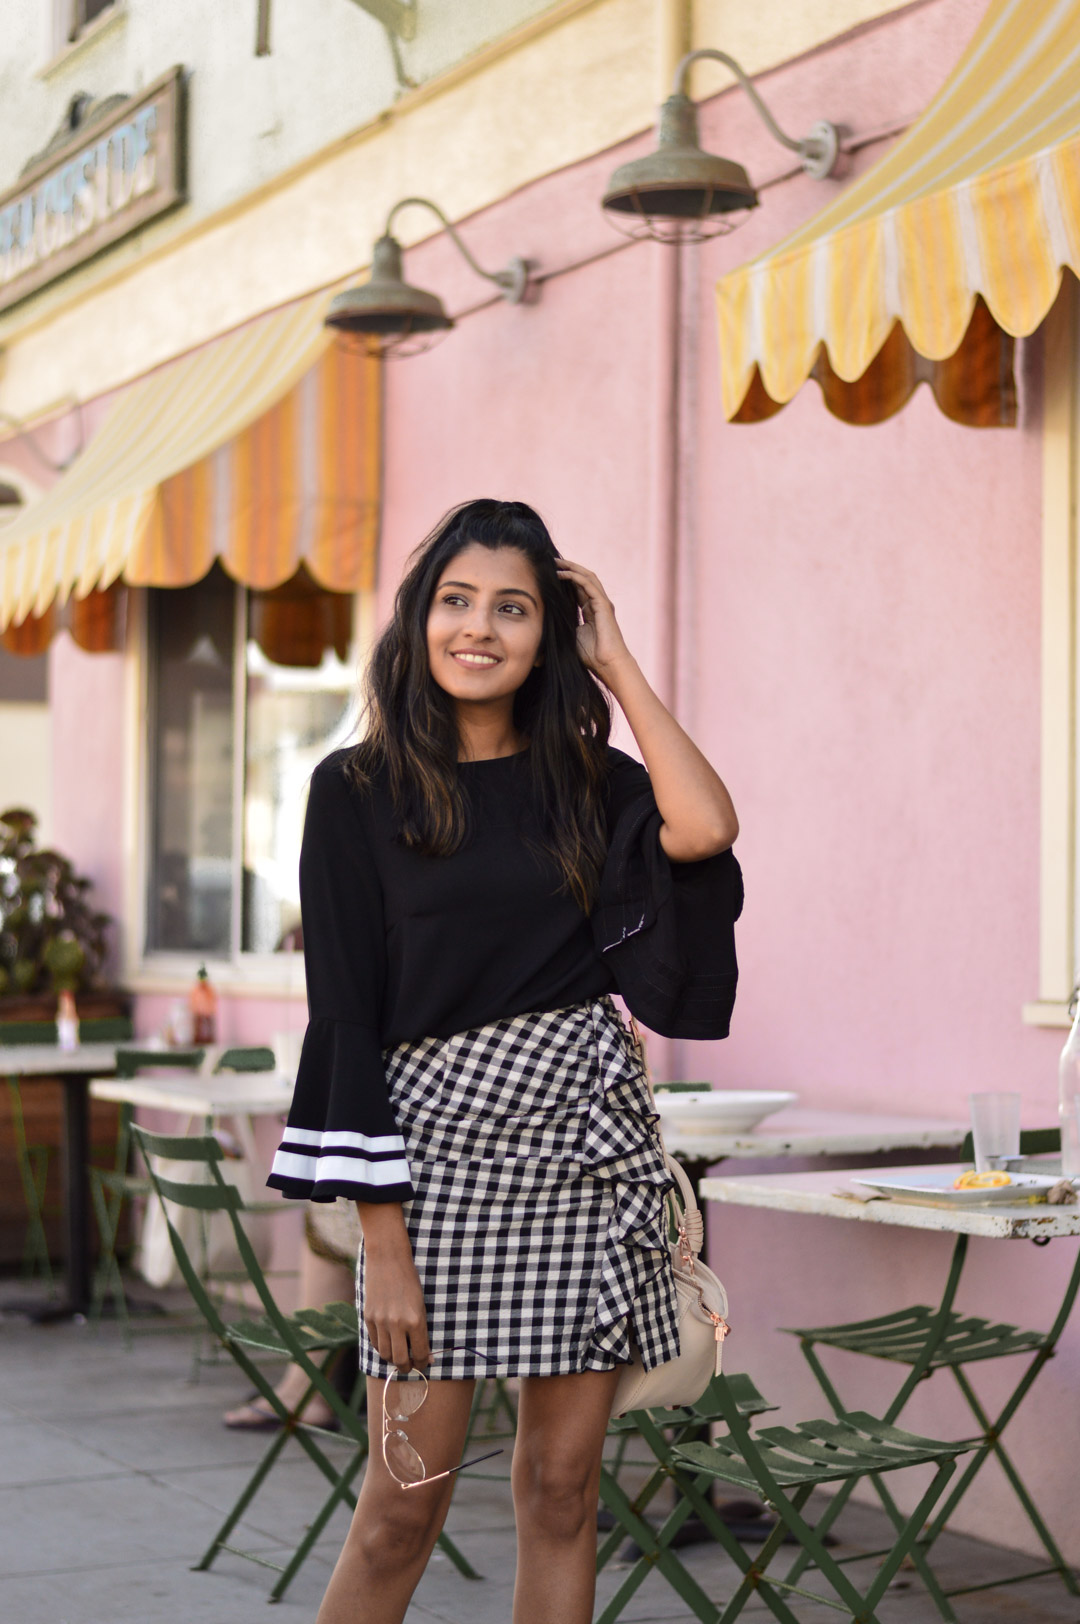 bell-sleeves-gingham-ruffles-transition-fashion-blogger-style 2